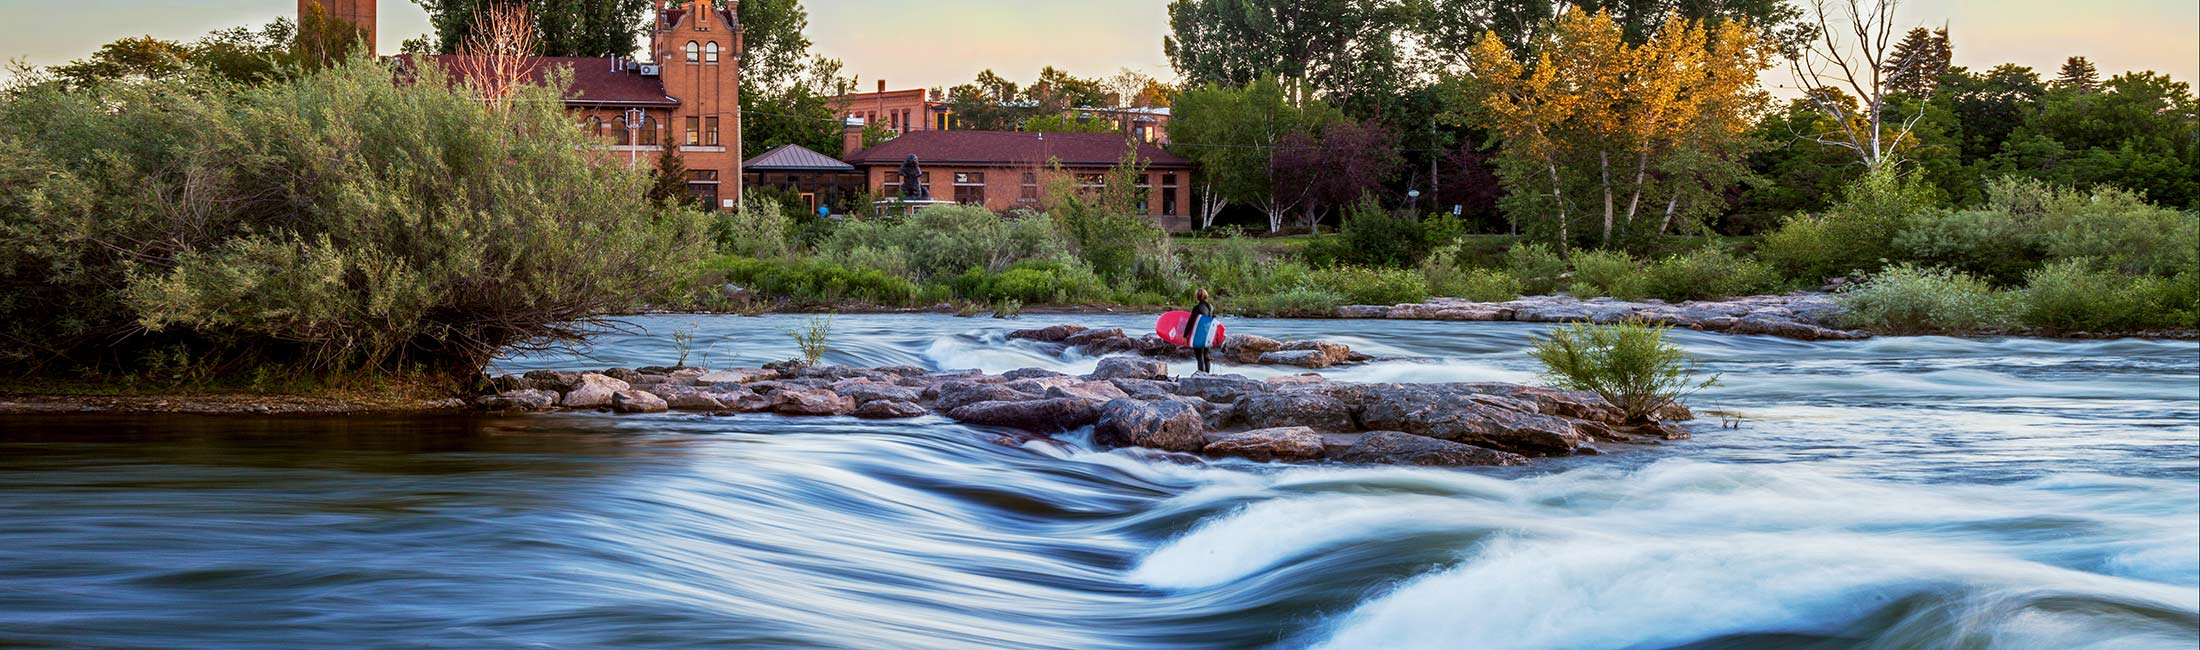 River Surfing in Missoula, Montana